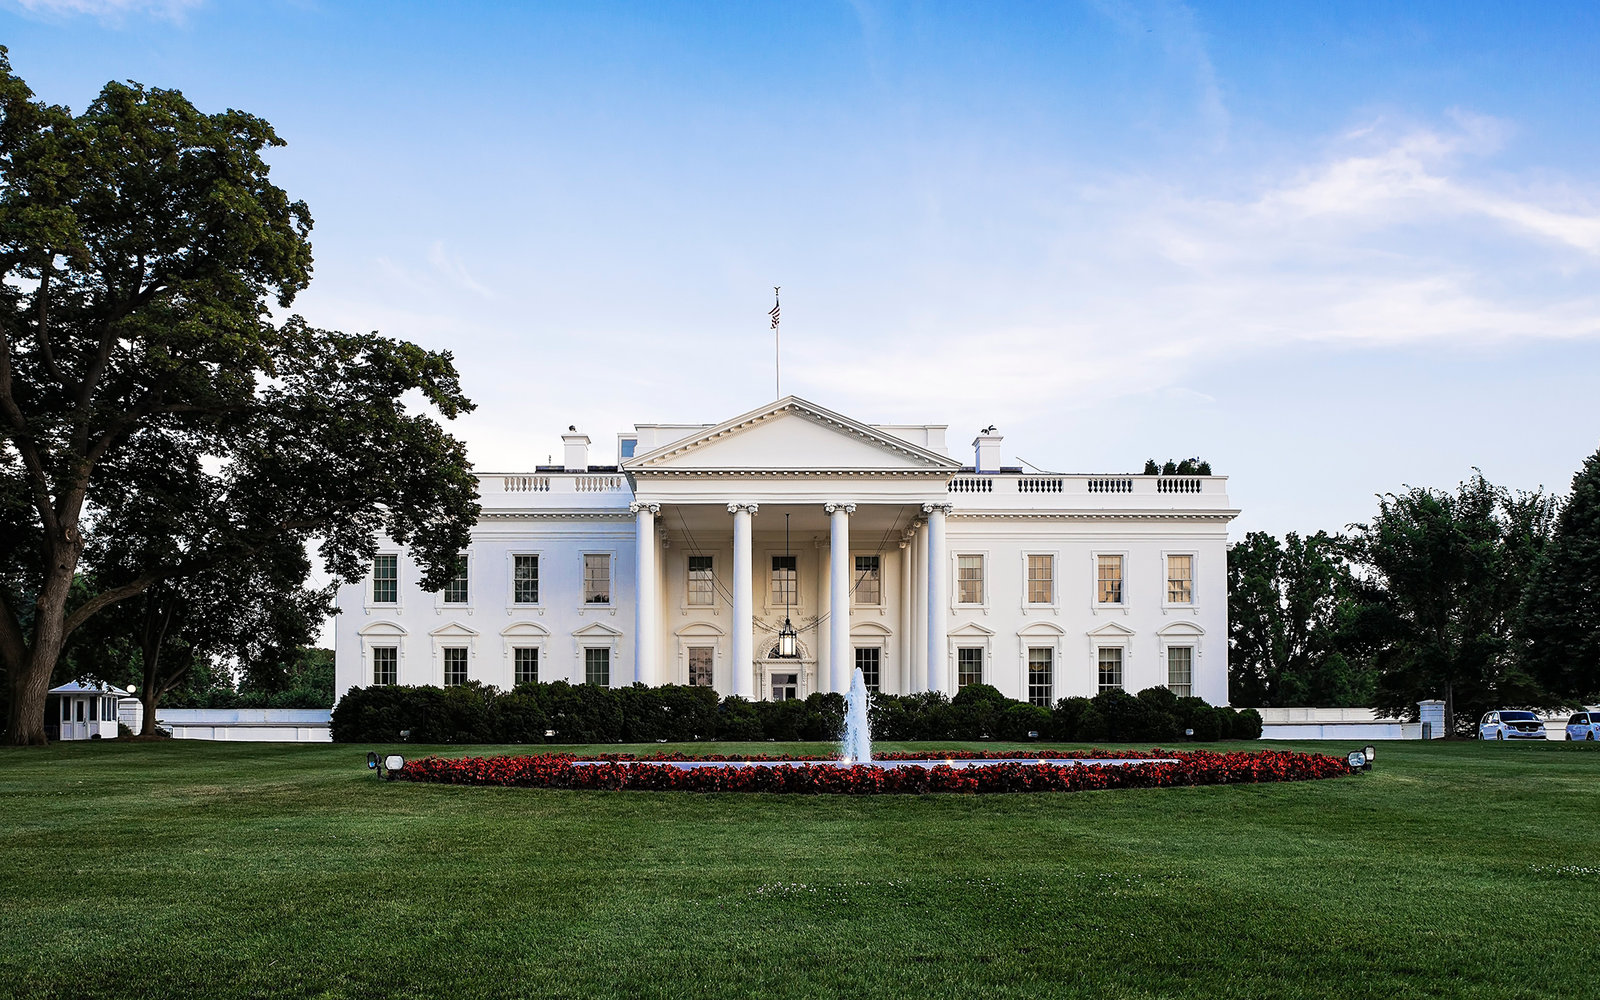 The White House Home Of The United States President U S Virtual Embassy Iran